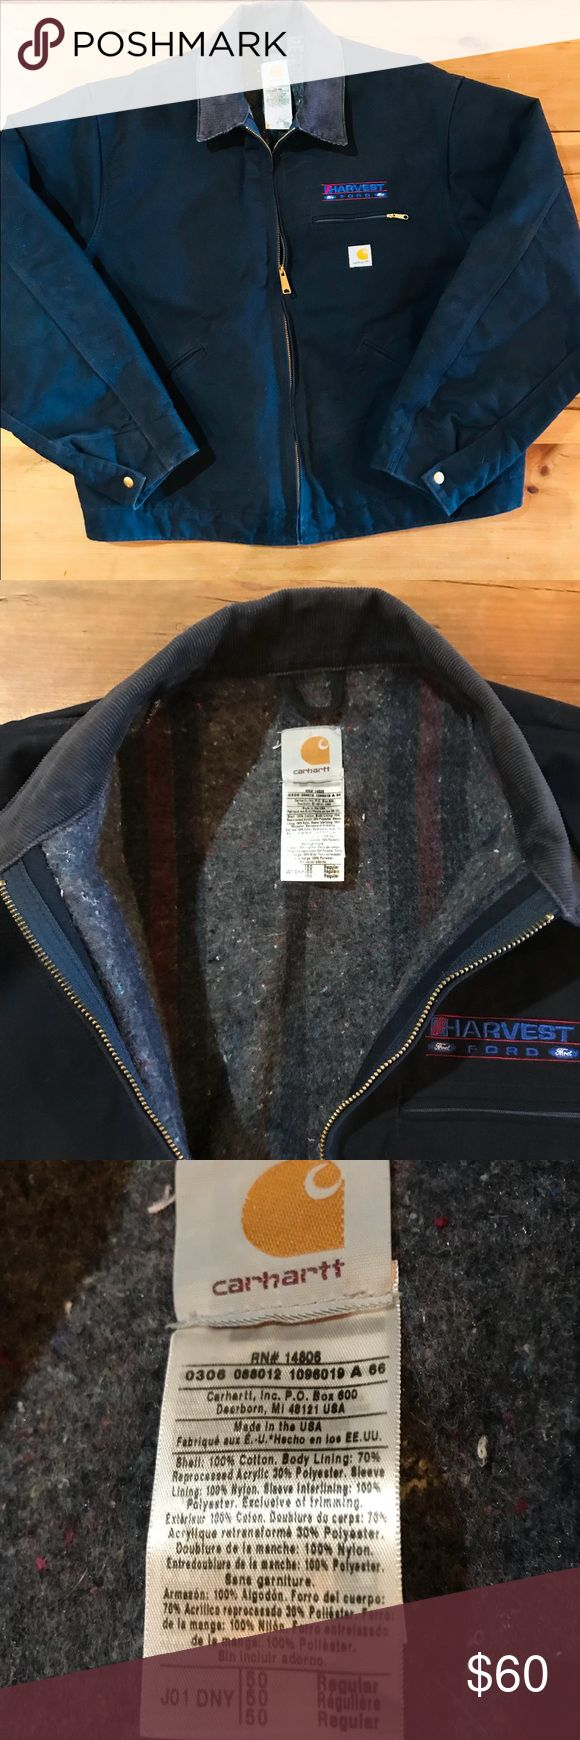 Men's Wool-lined heavy duty coat. CARHARTT 50 R Men's CARHARTT Navy Blue- Wool lined Jacket.  BRAND NEW, NEVER WORN!!!!  DOES SOMEONE YOU LOVE WORK            OUTSIDE???? Heavy duty work coat! ***This may require a bit more postage Carhartt Jackets & Coats Military & Field